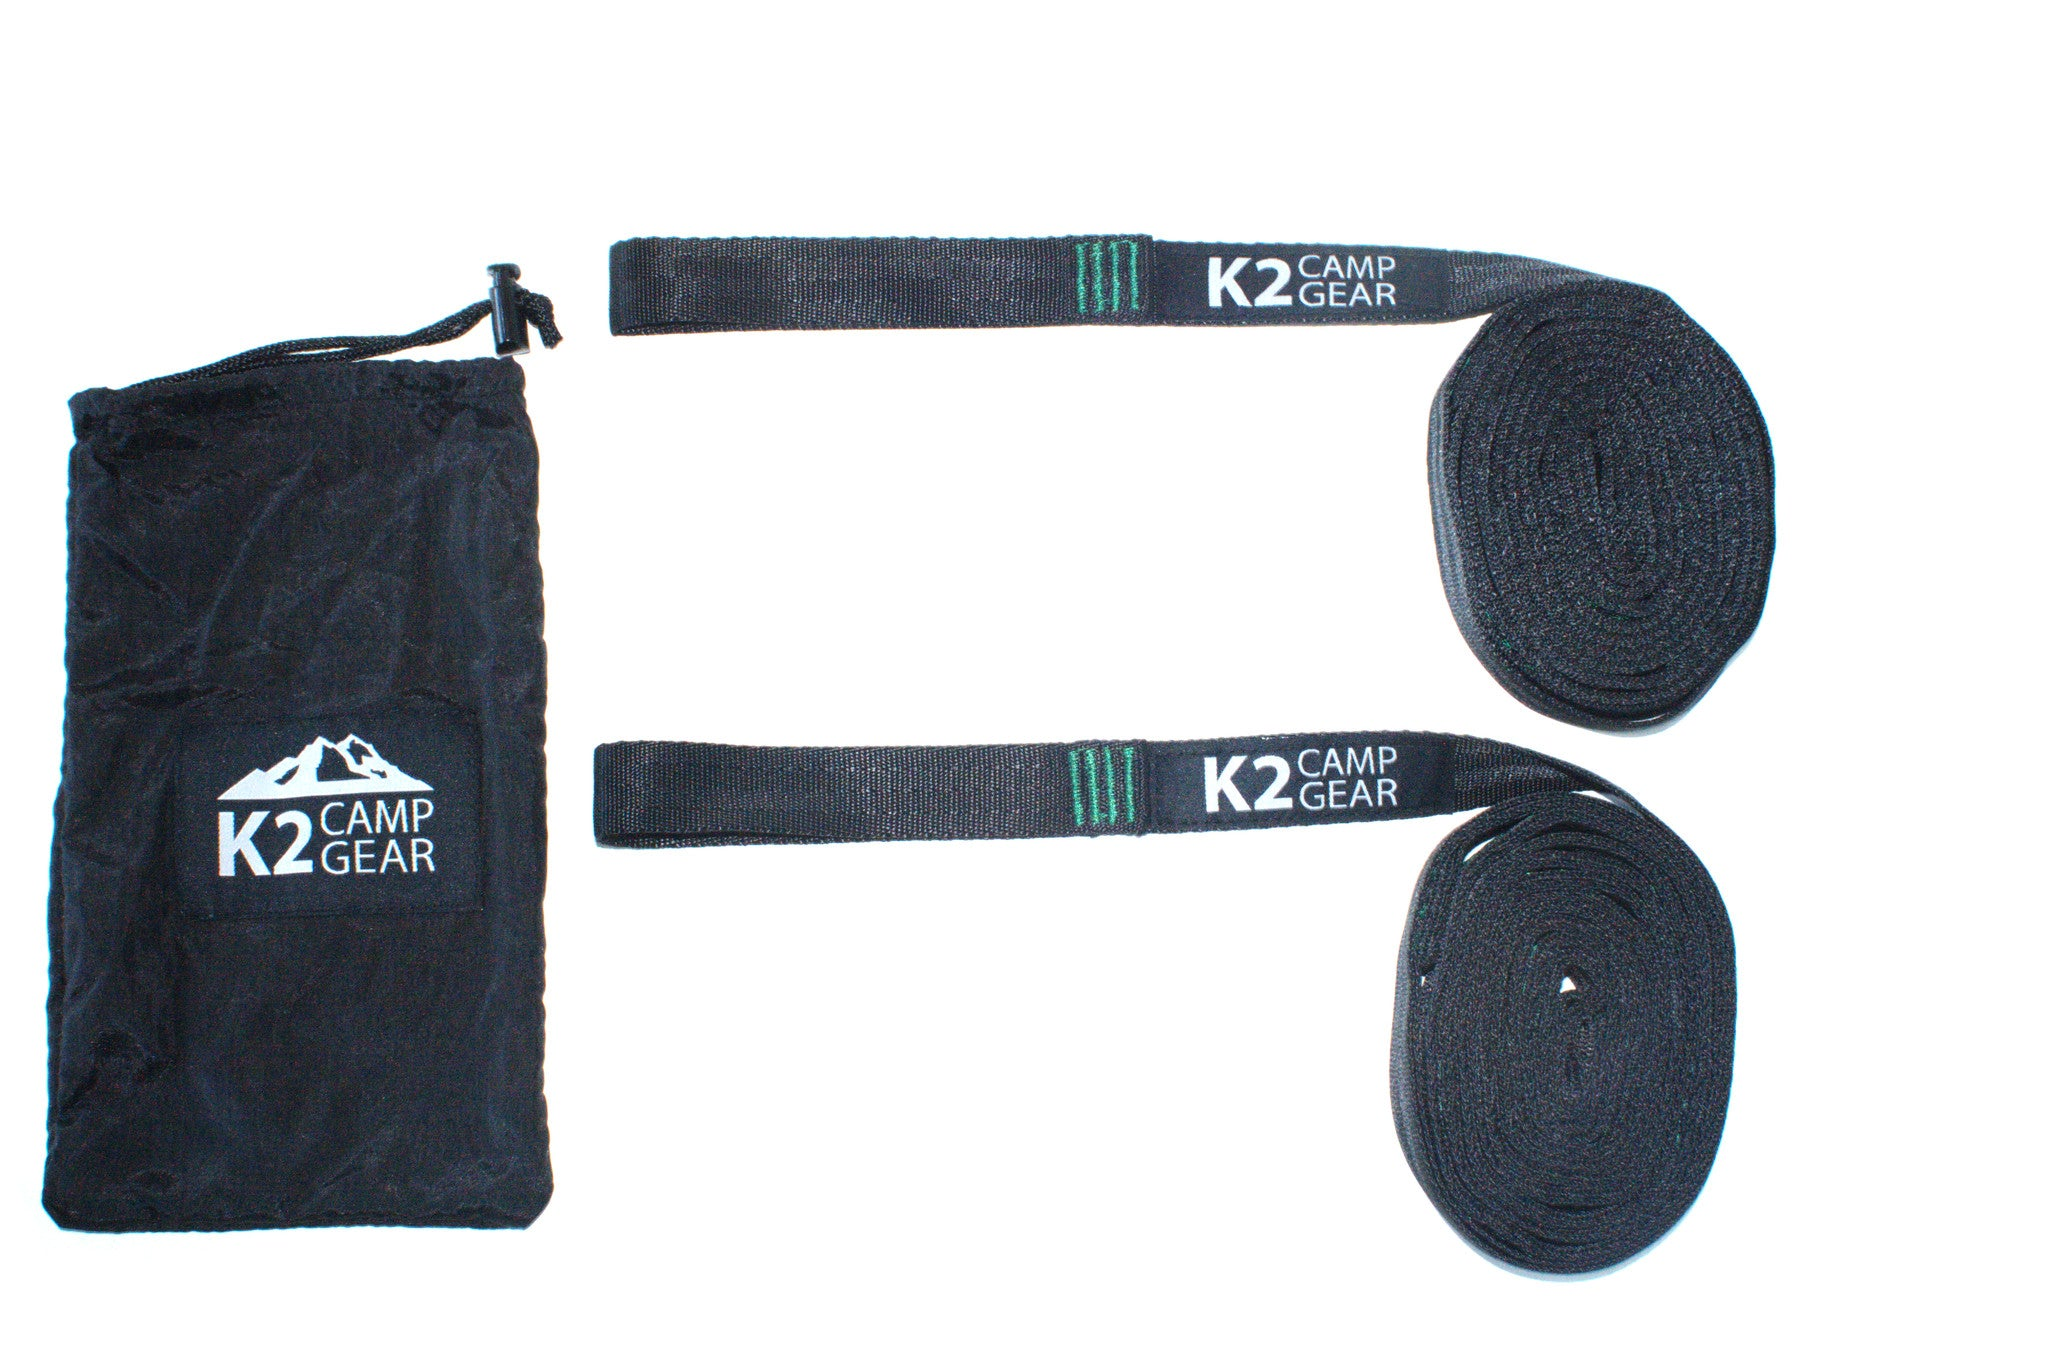 k2 camp gear triple stitched camping hammock straps tree saver set   2 straps and carrying k2 camp gear triple stitched camping hammock tree saver strap set  rh   k2campgear